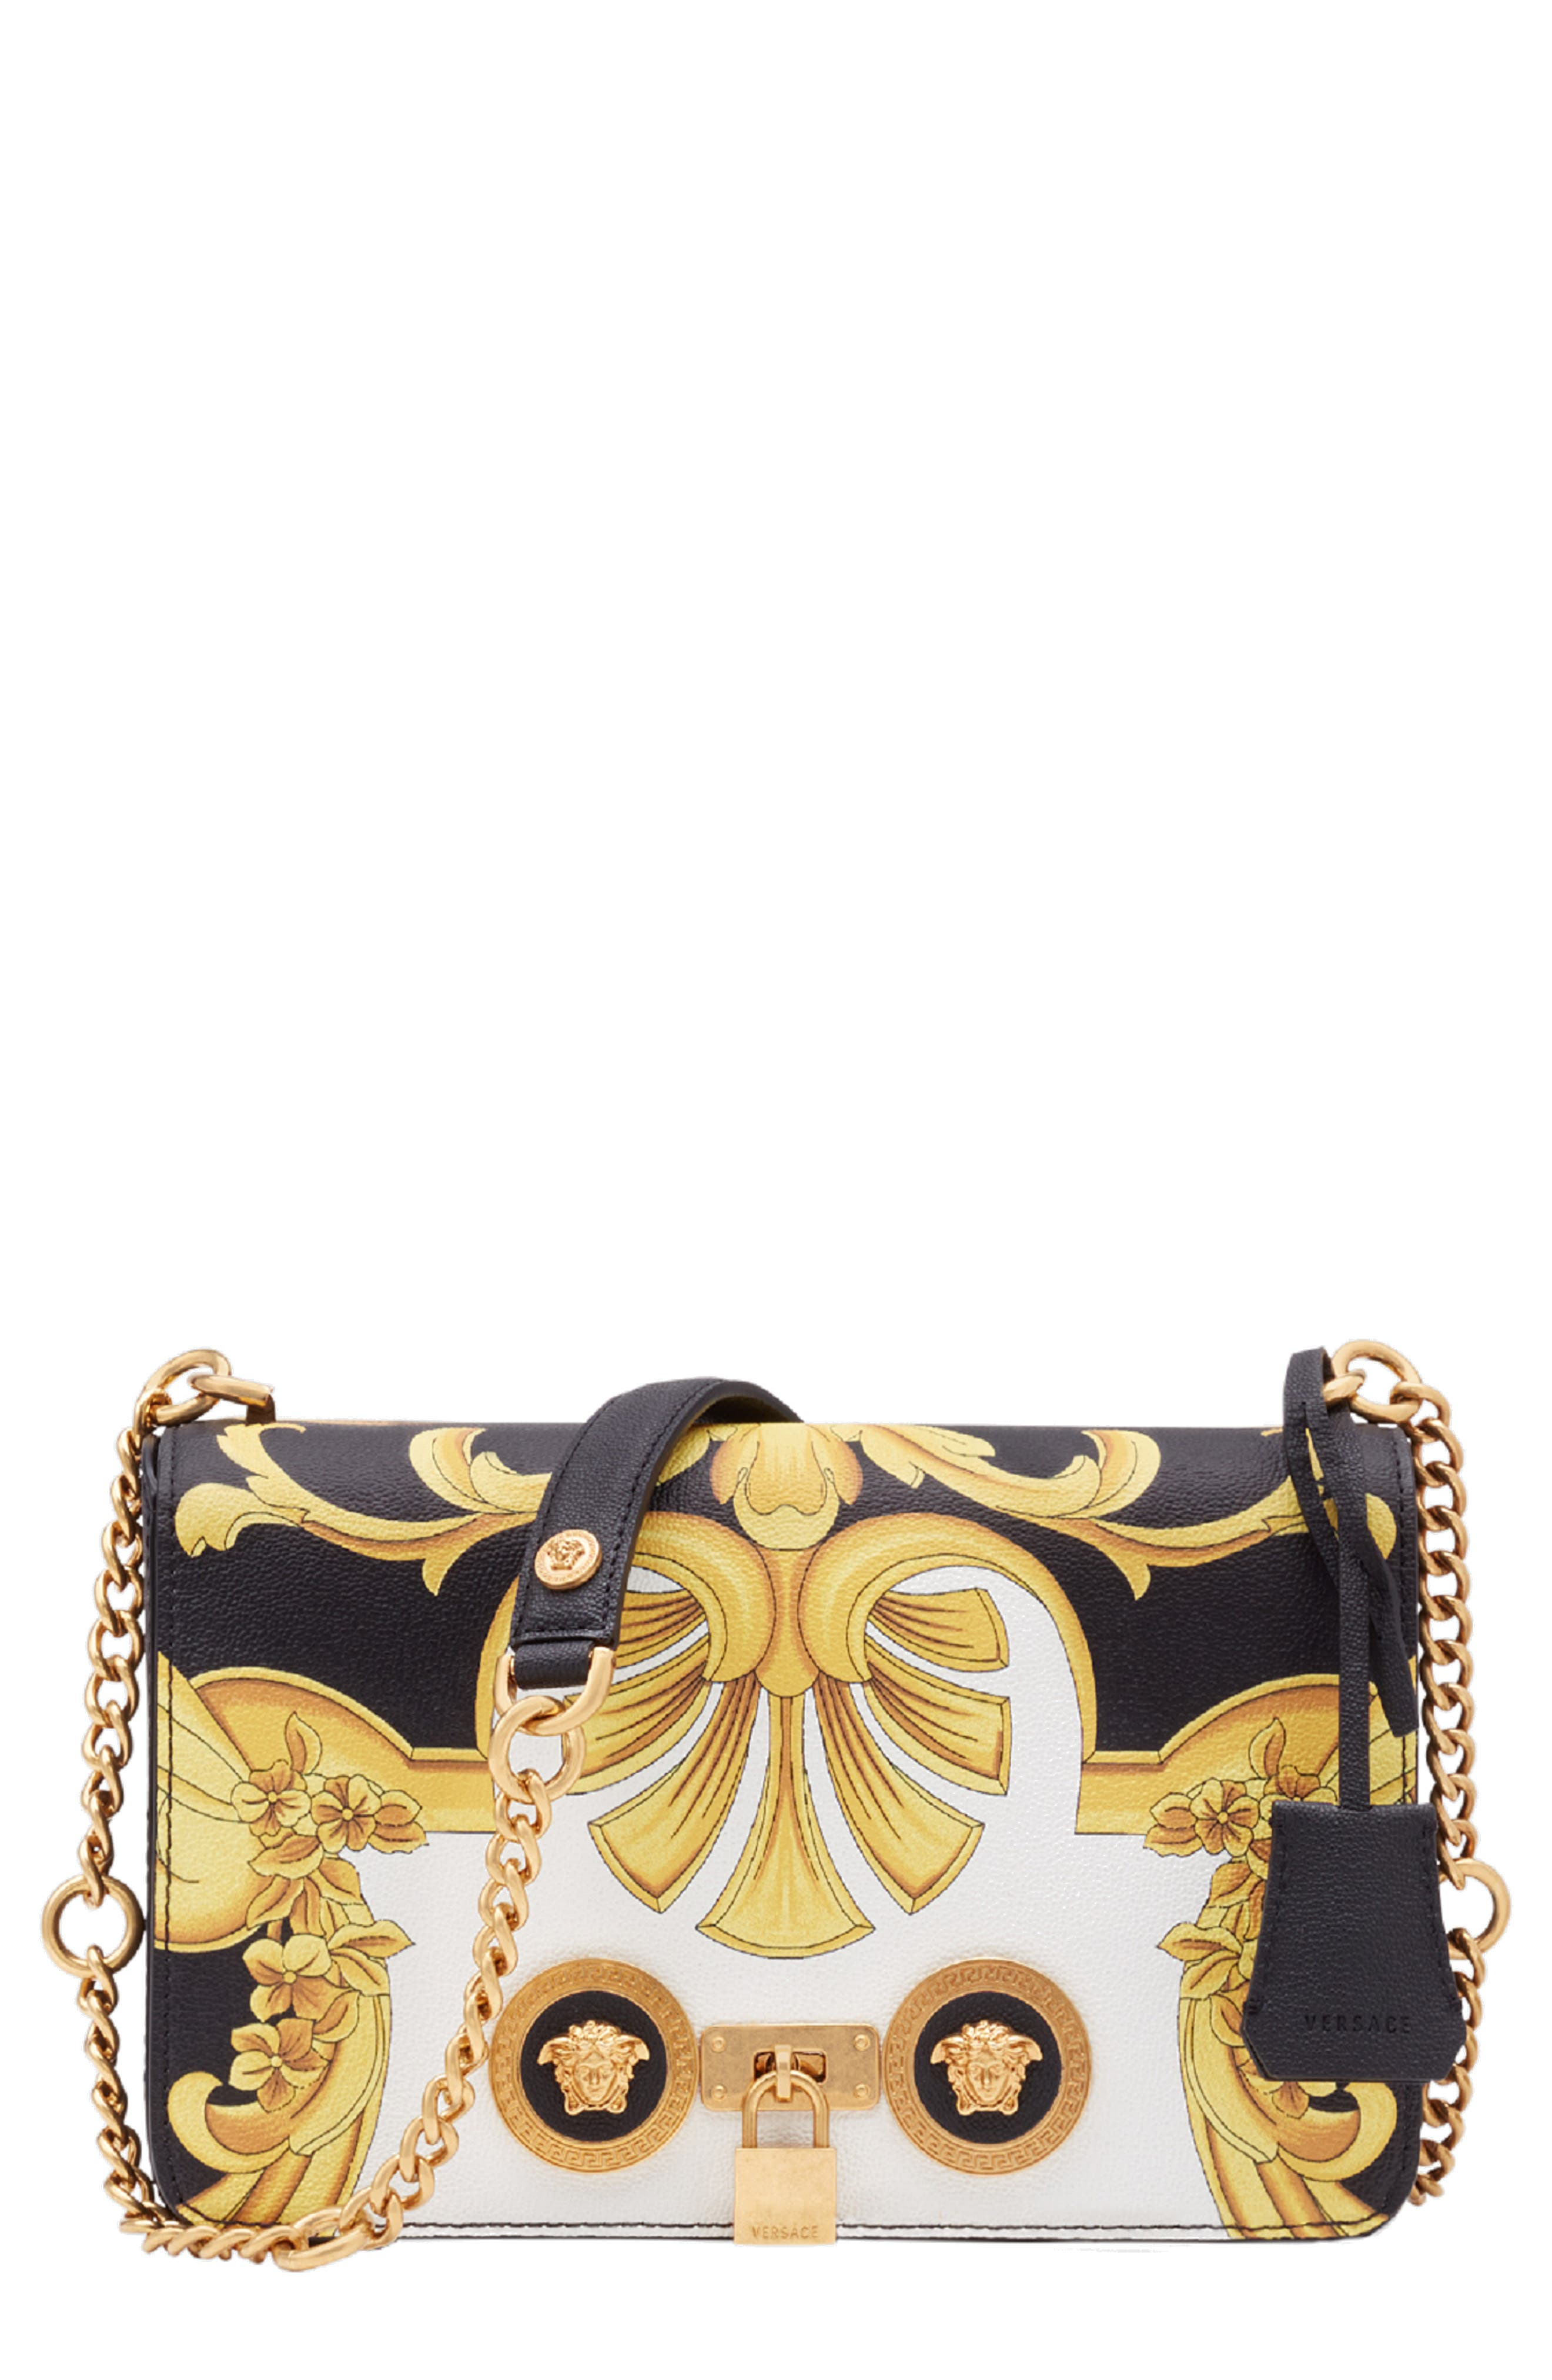 Versace Baroque Print Medium Icon Leather Crossbody Bag,                             Main thumbnail 1, color,                             NERO MULTI